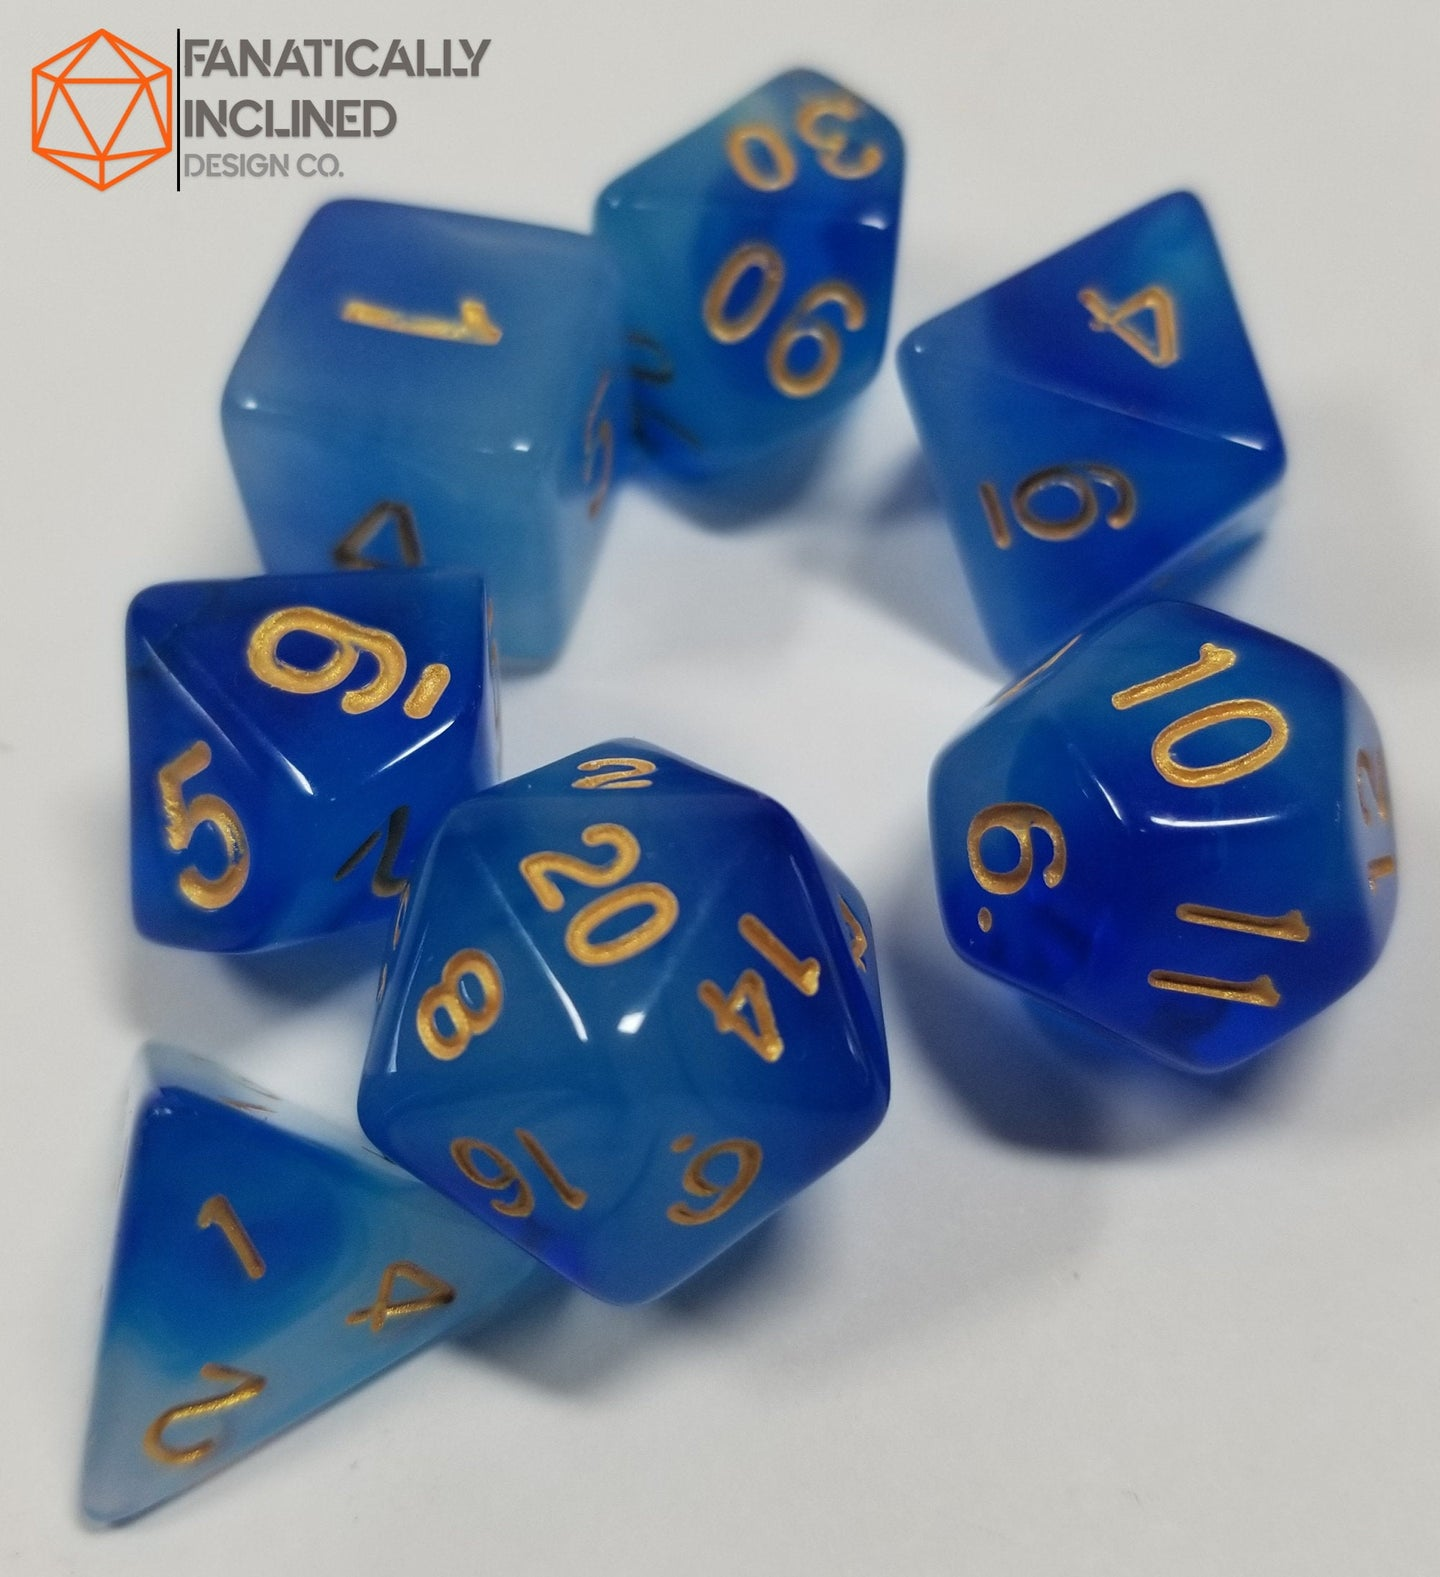 Blue White Swirl Mystical Orb 7pc Dice Set